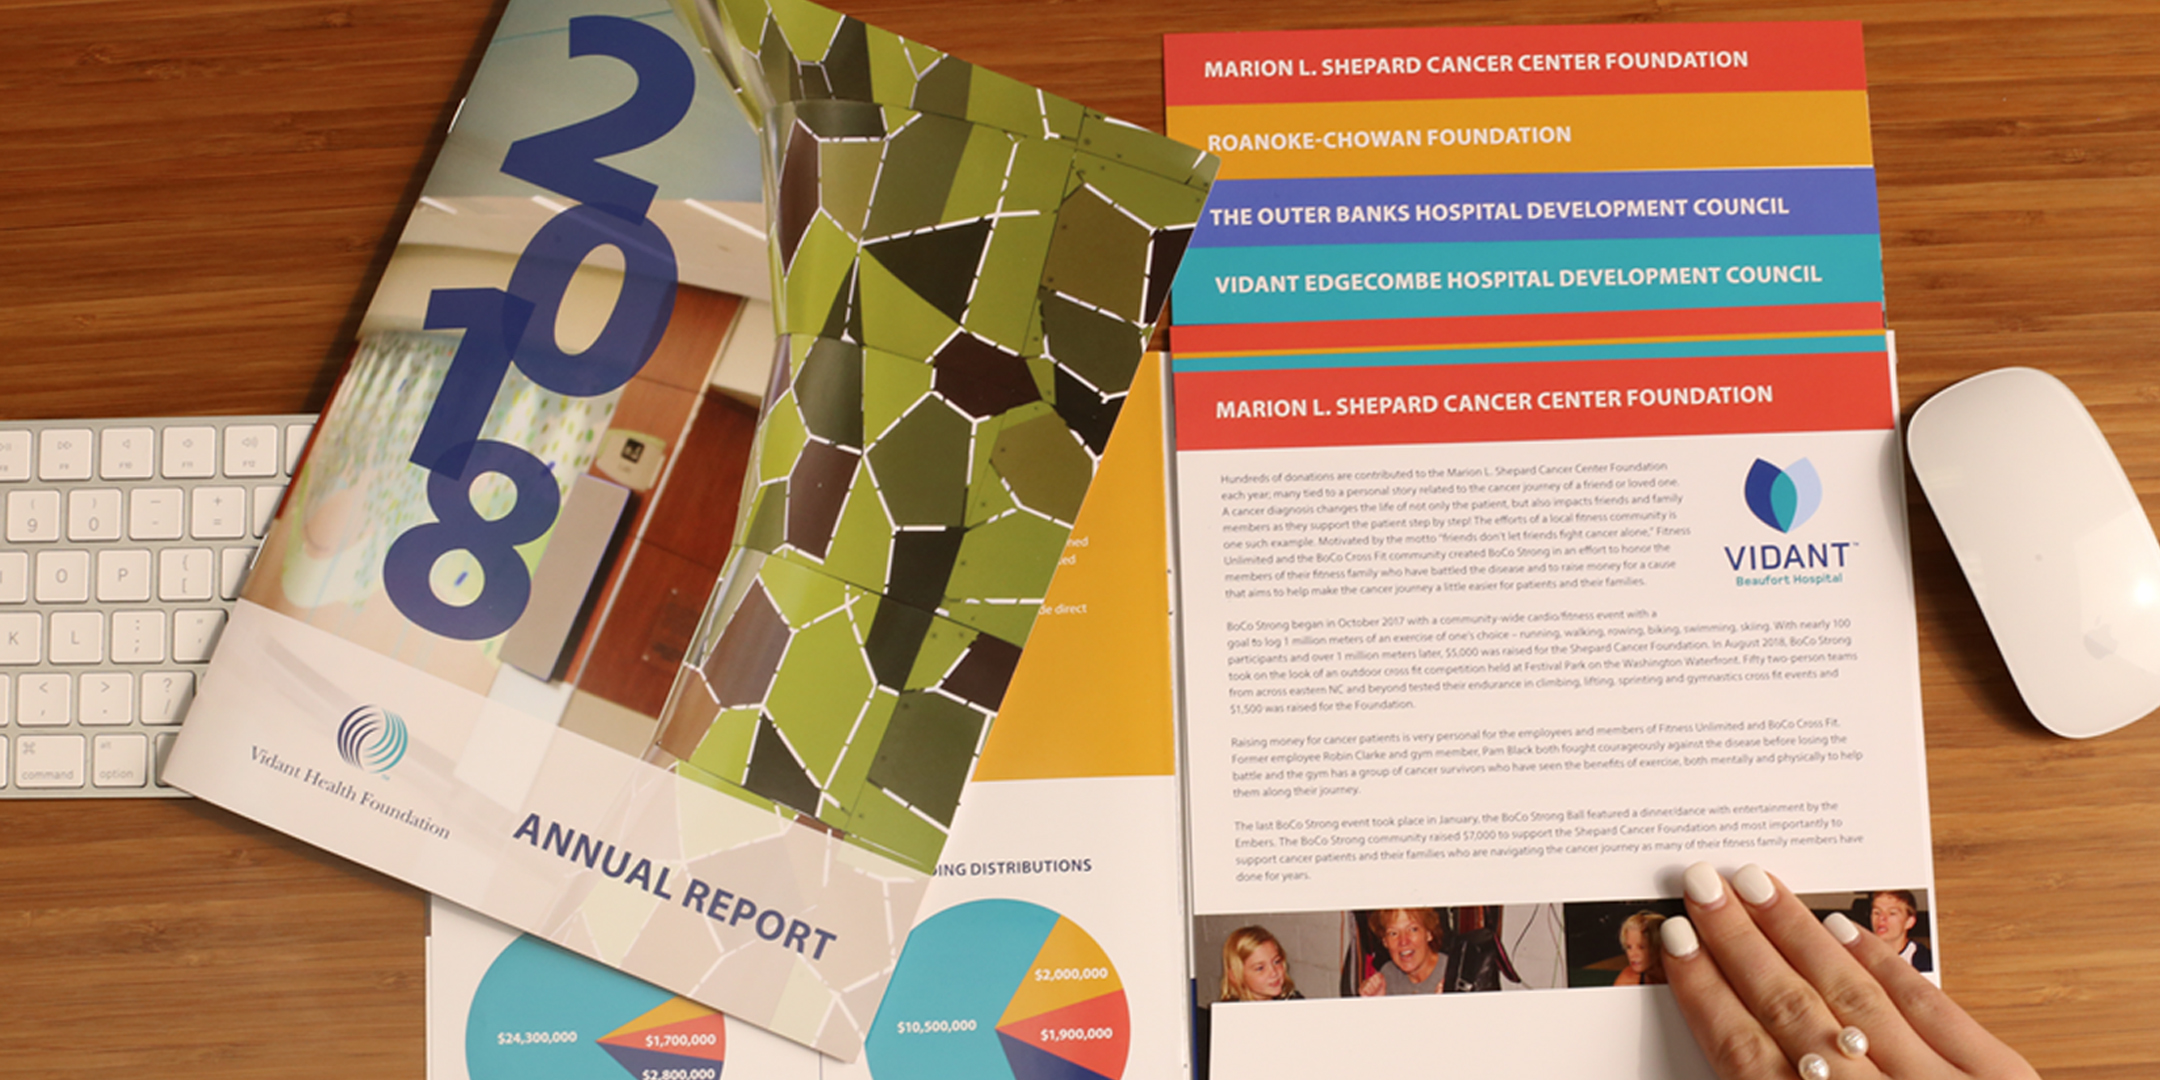 Vidant Health 2018 Annual Report 2018